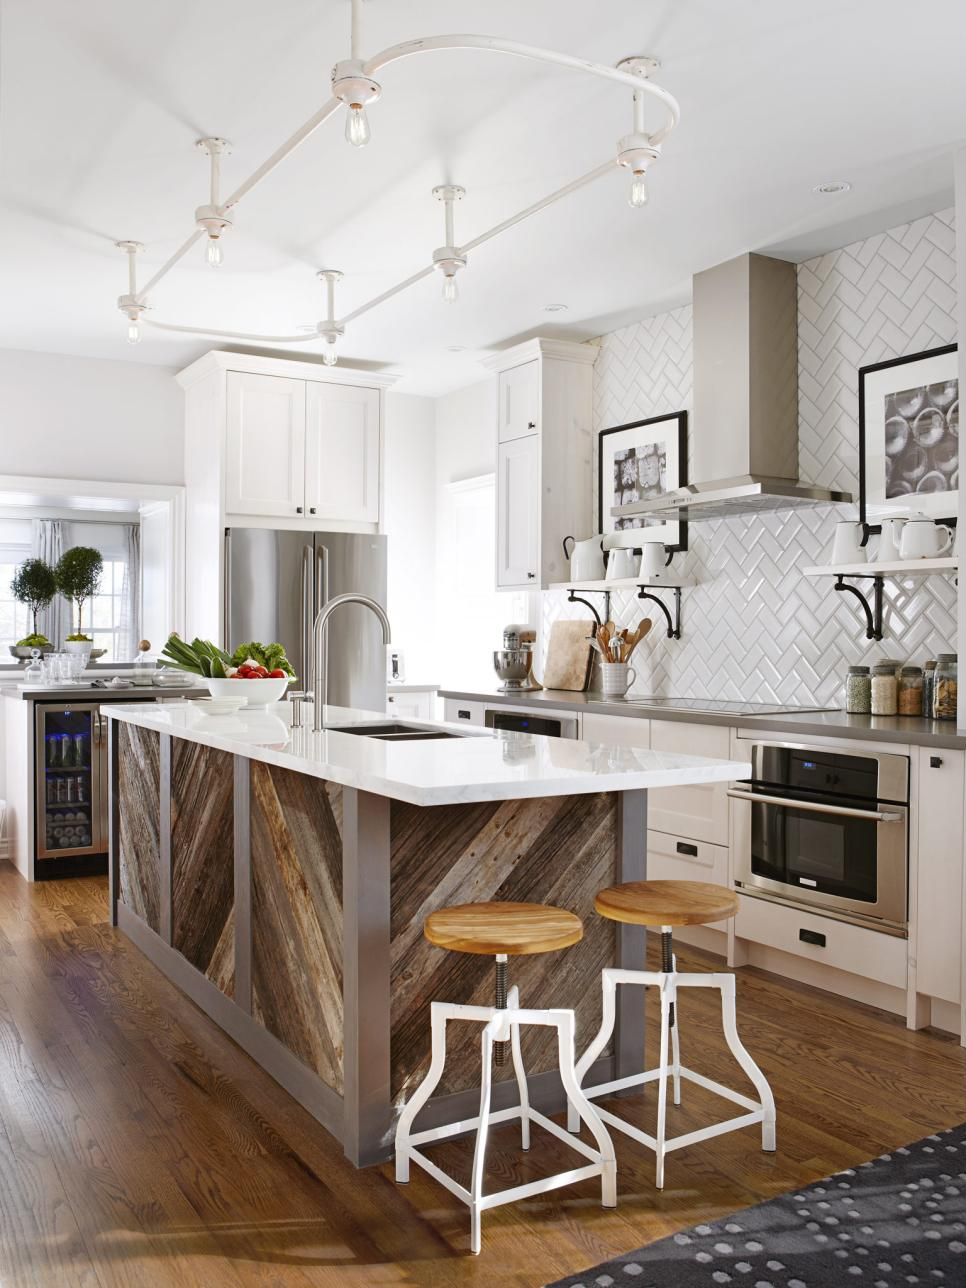 20 dreamy kitchen islands hgtv for Kitchen wall island